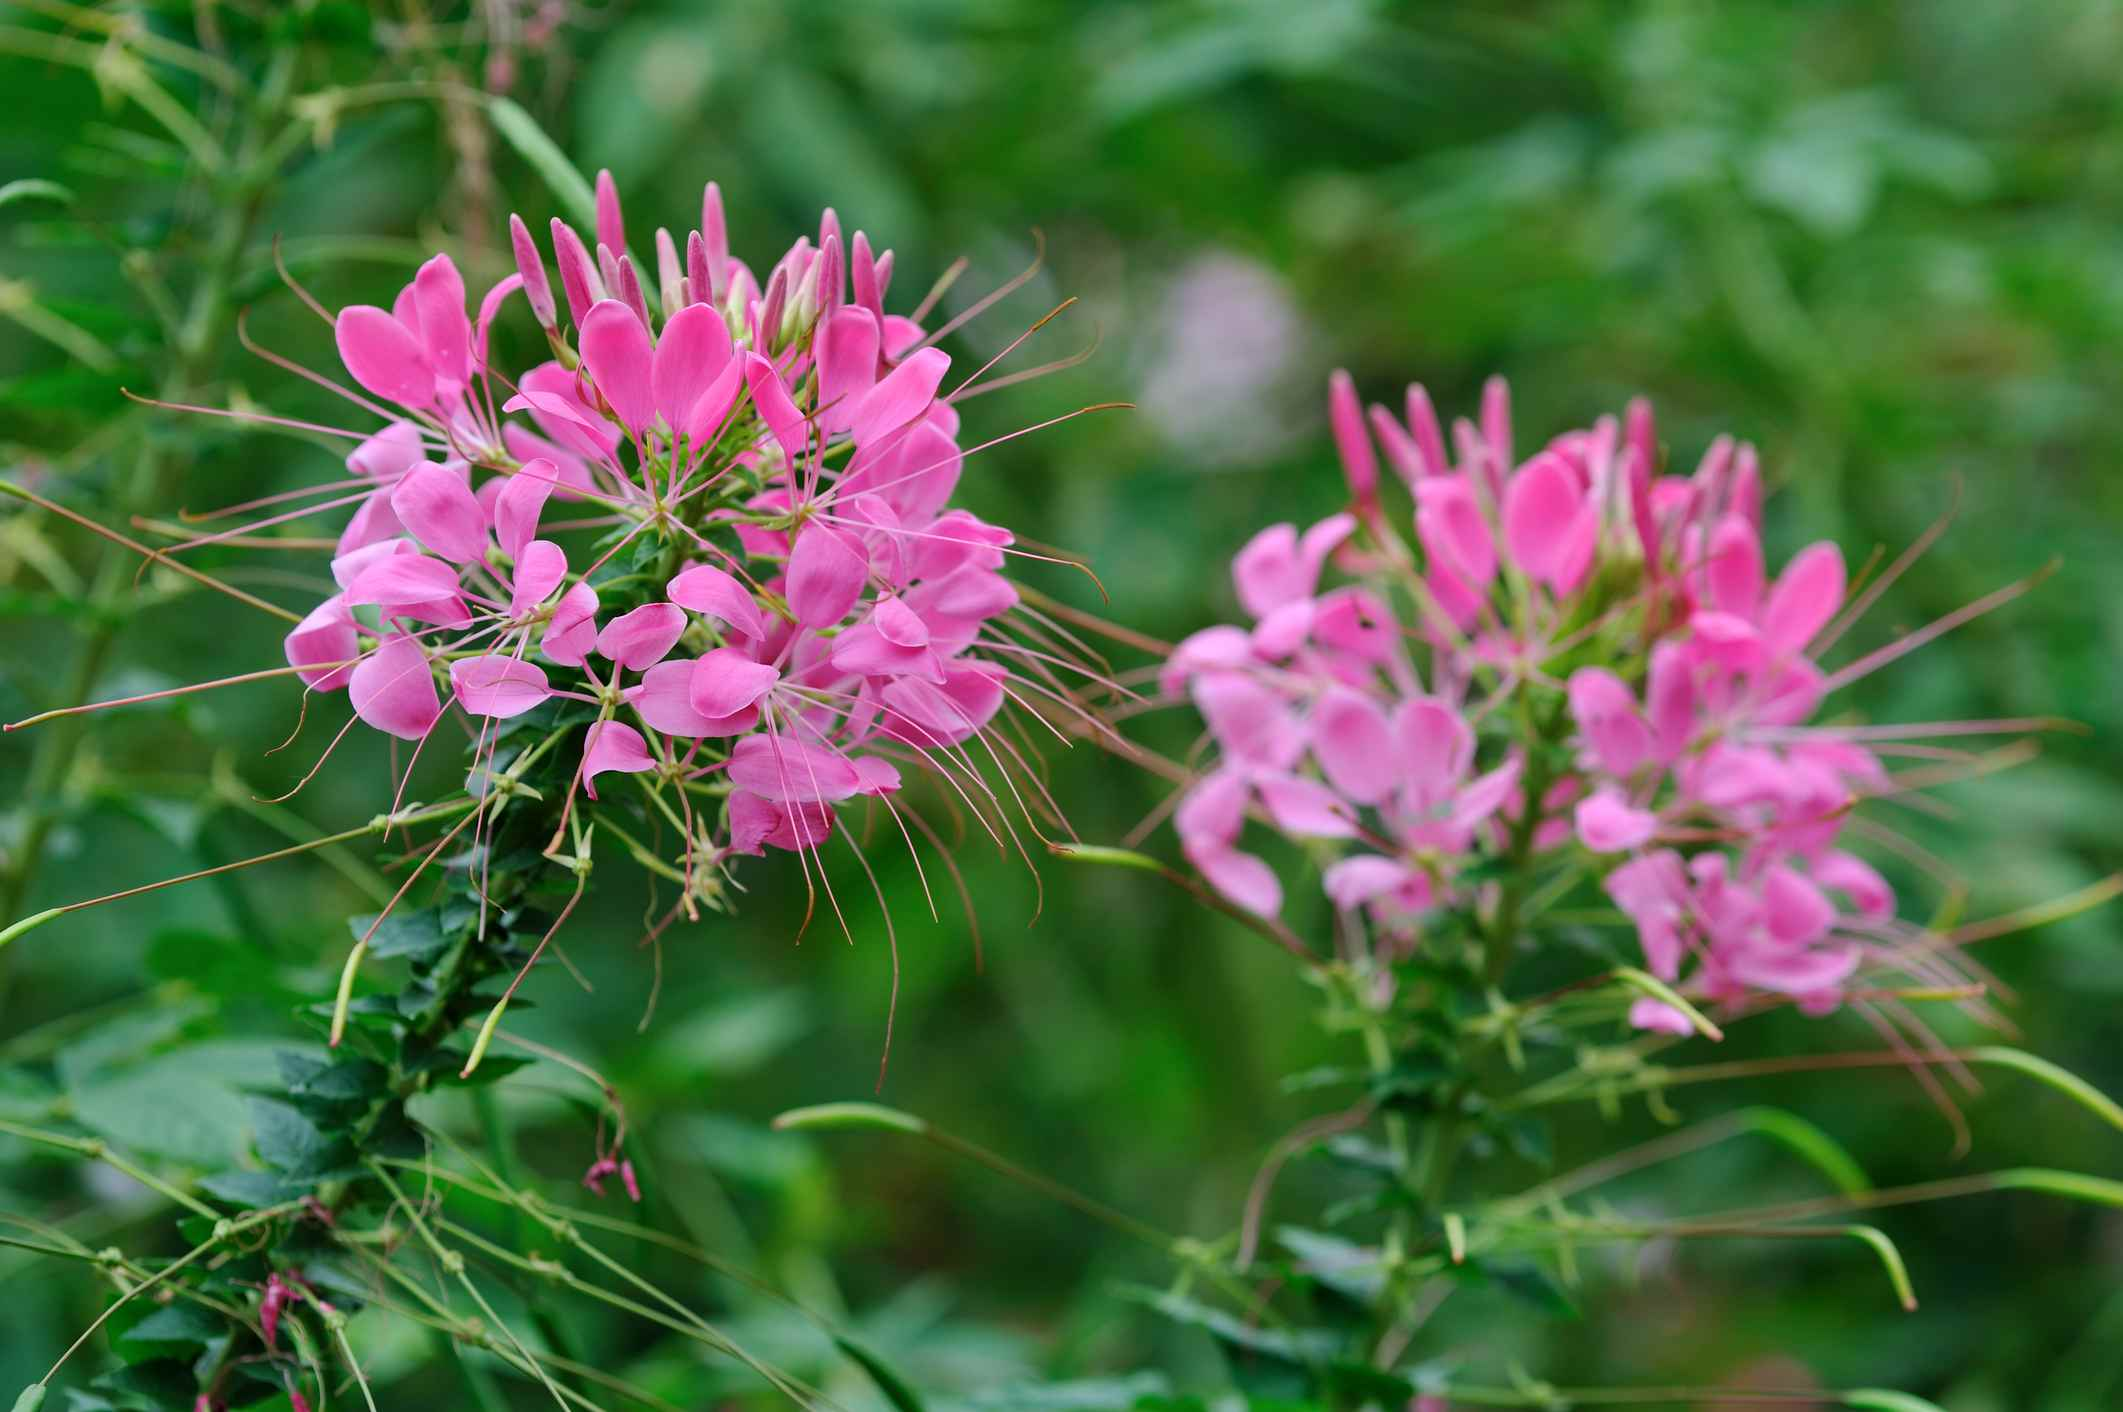 Annual flowers for dry shade areas cleome or spider flower cleome hassleriana izmirmasajfo